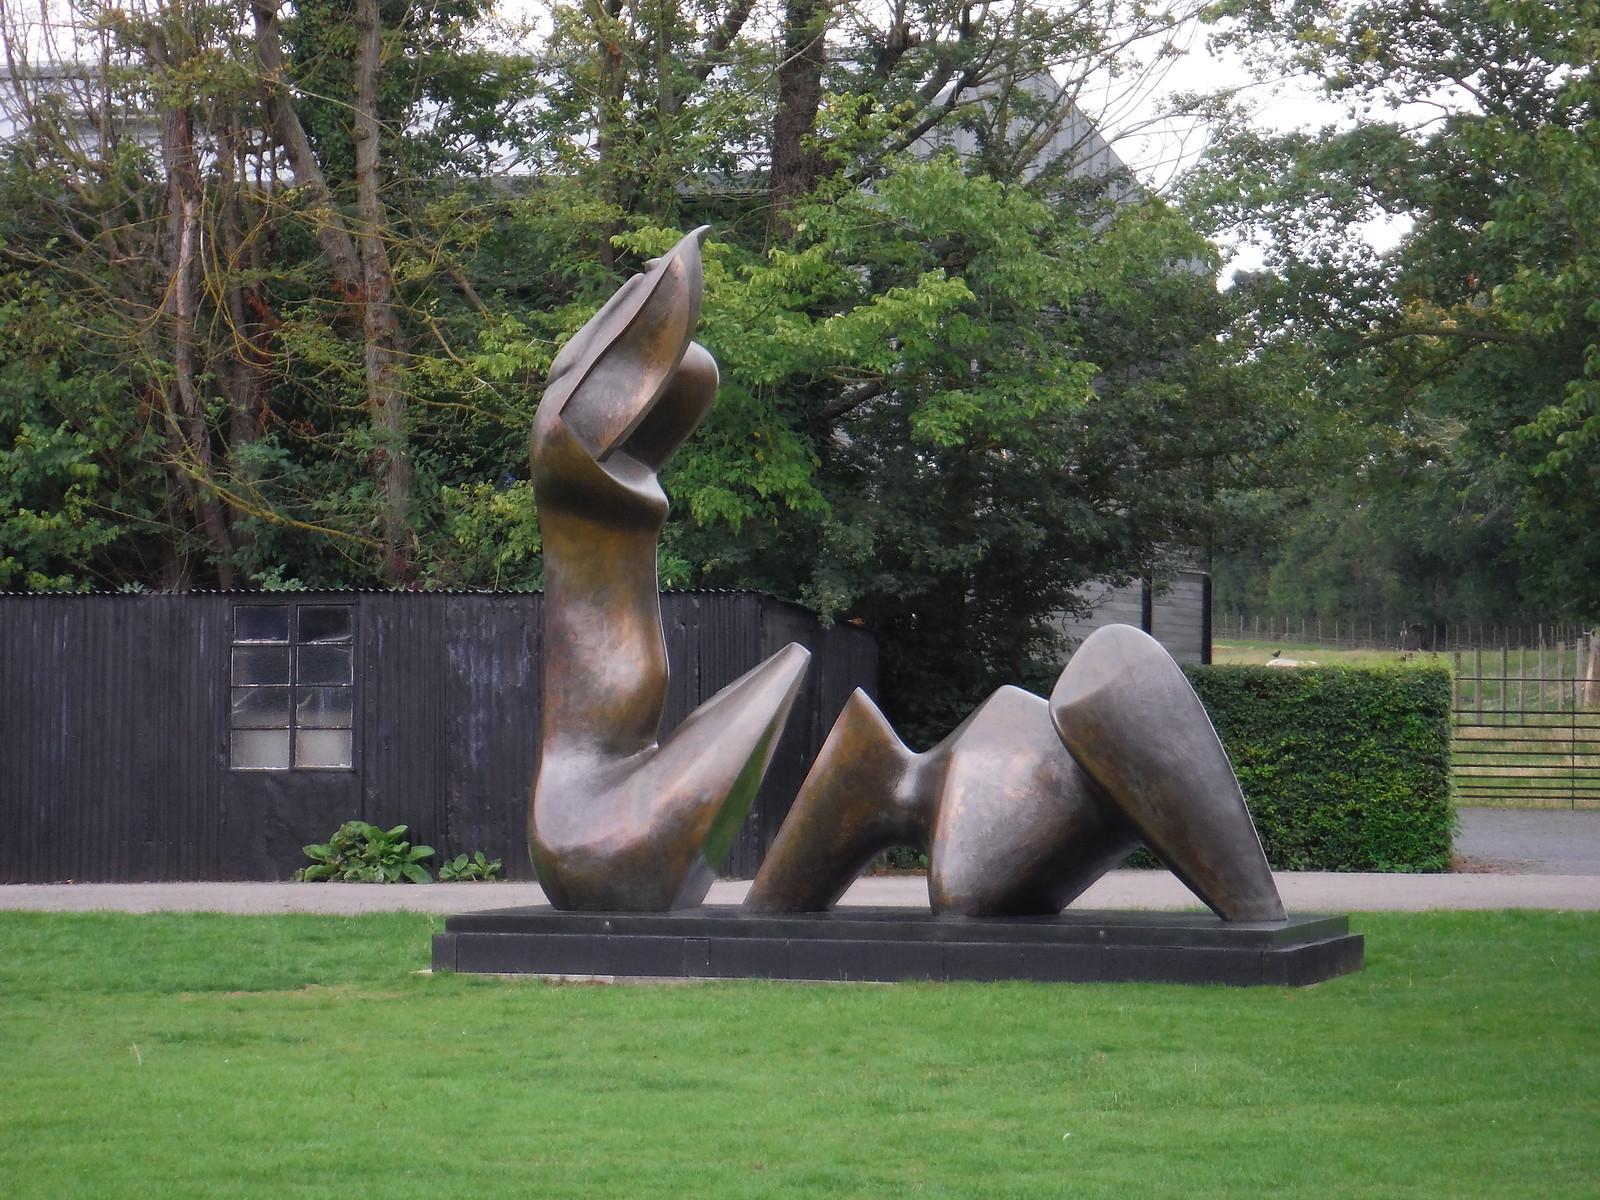 Two Piece Reclining Figure: Cut (1979-81) SWC Walk 164 Roydon to Sawbridgeworth via Henry Moore Foundation